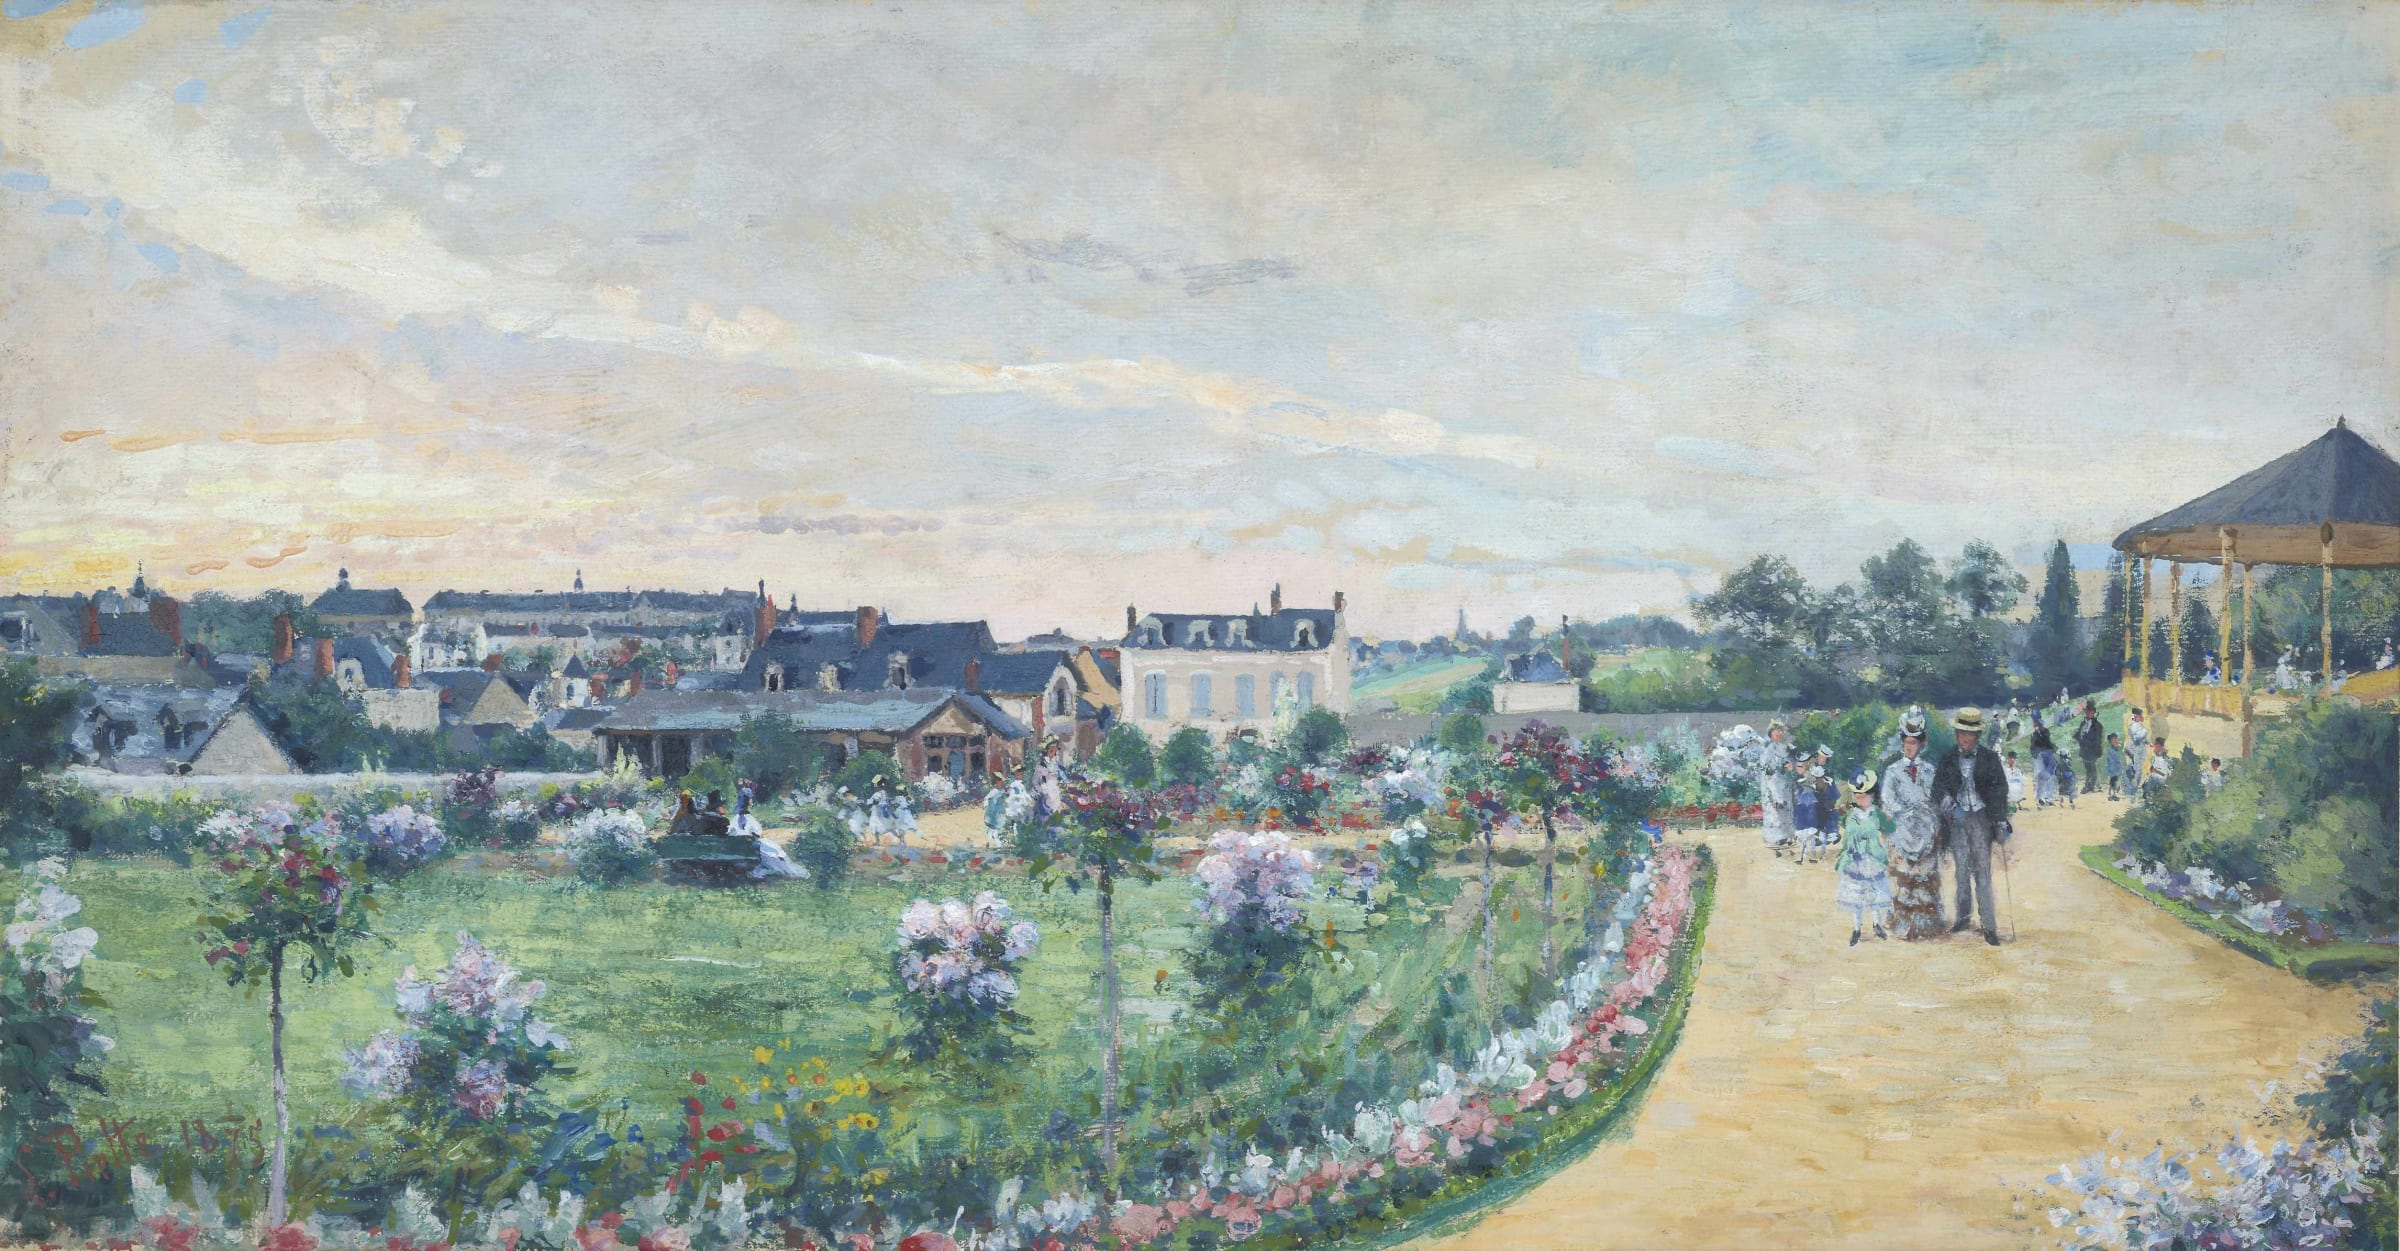 "<span class=""link fancybox-details-link""><a href=""/artists/71-ludovic-piette/works/9415-ludovic-piette-le-parc-au-mans-1875/"">View Detail Page</a></span><div class=""artist""><span class=""artist""><strong>Ludovic Piette</strong></span></div>